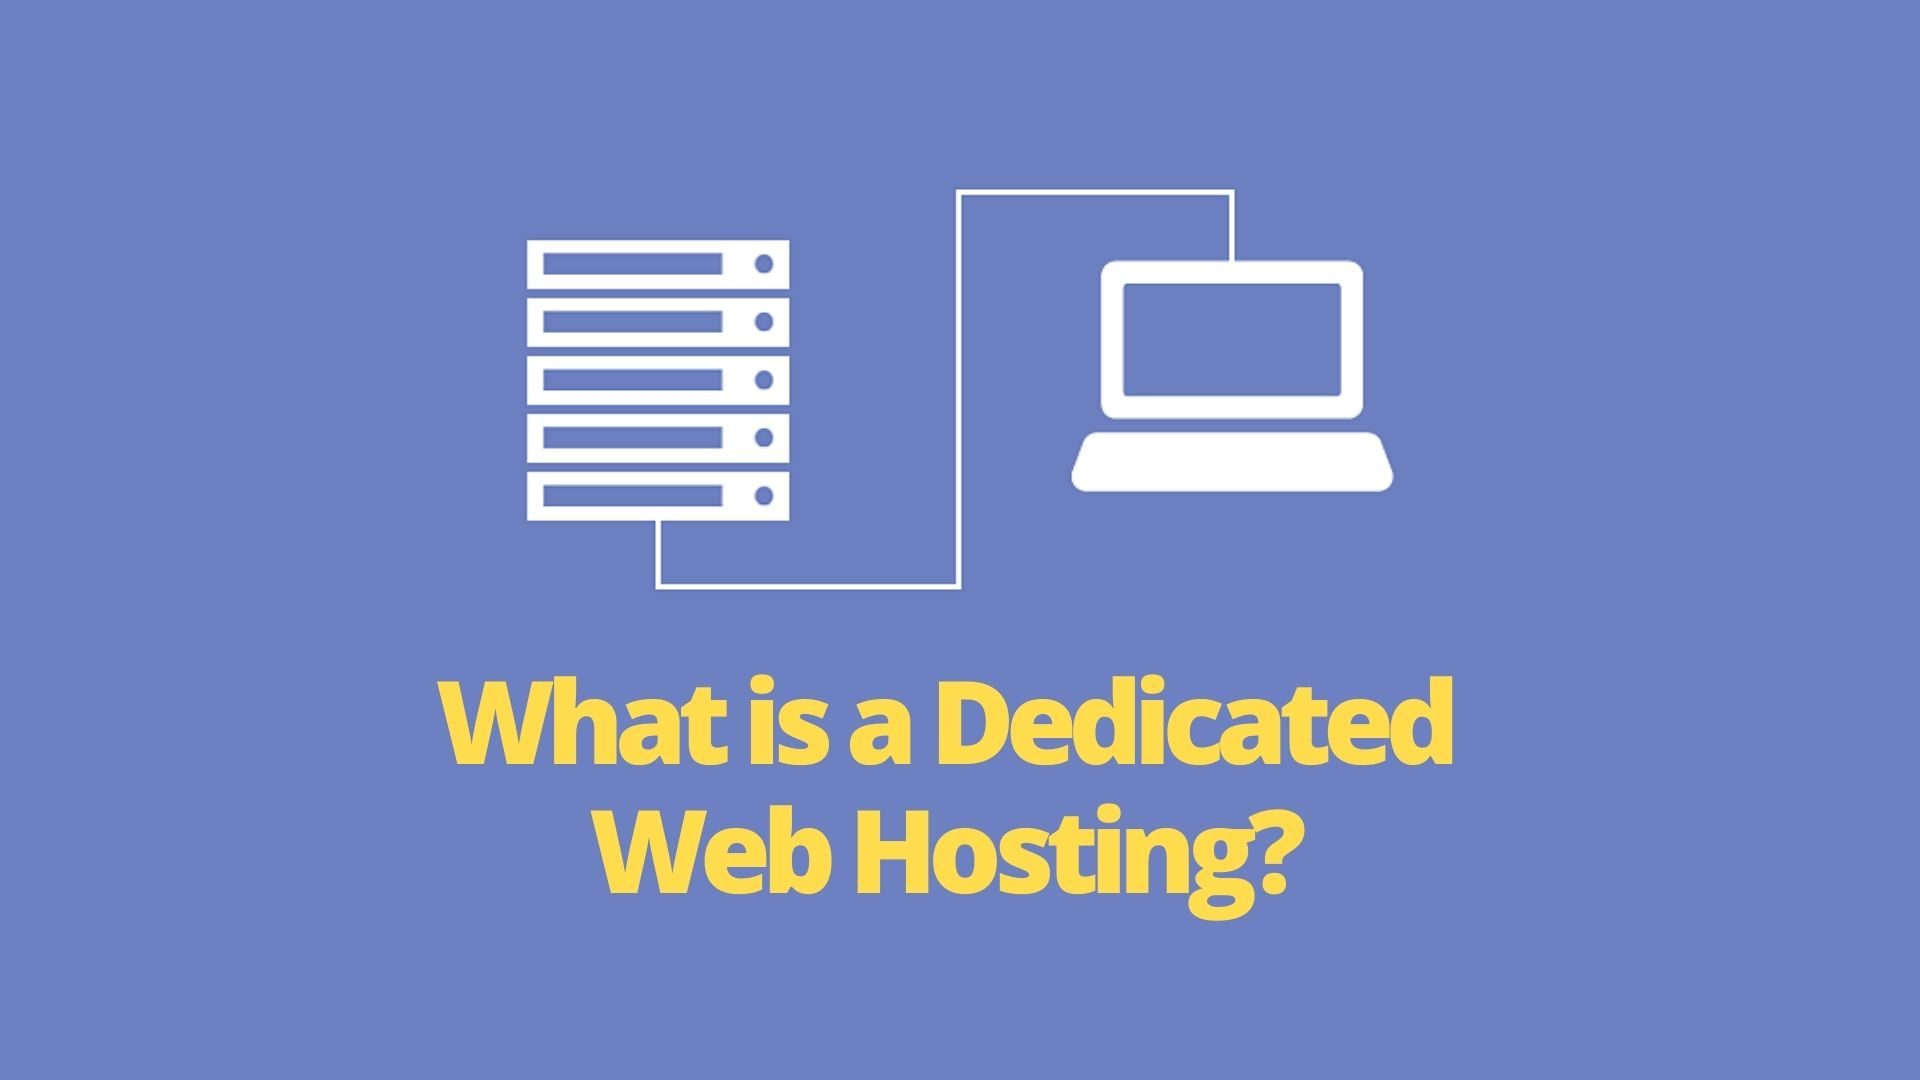 Why Use Dedicated Web Hosting?